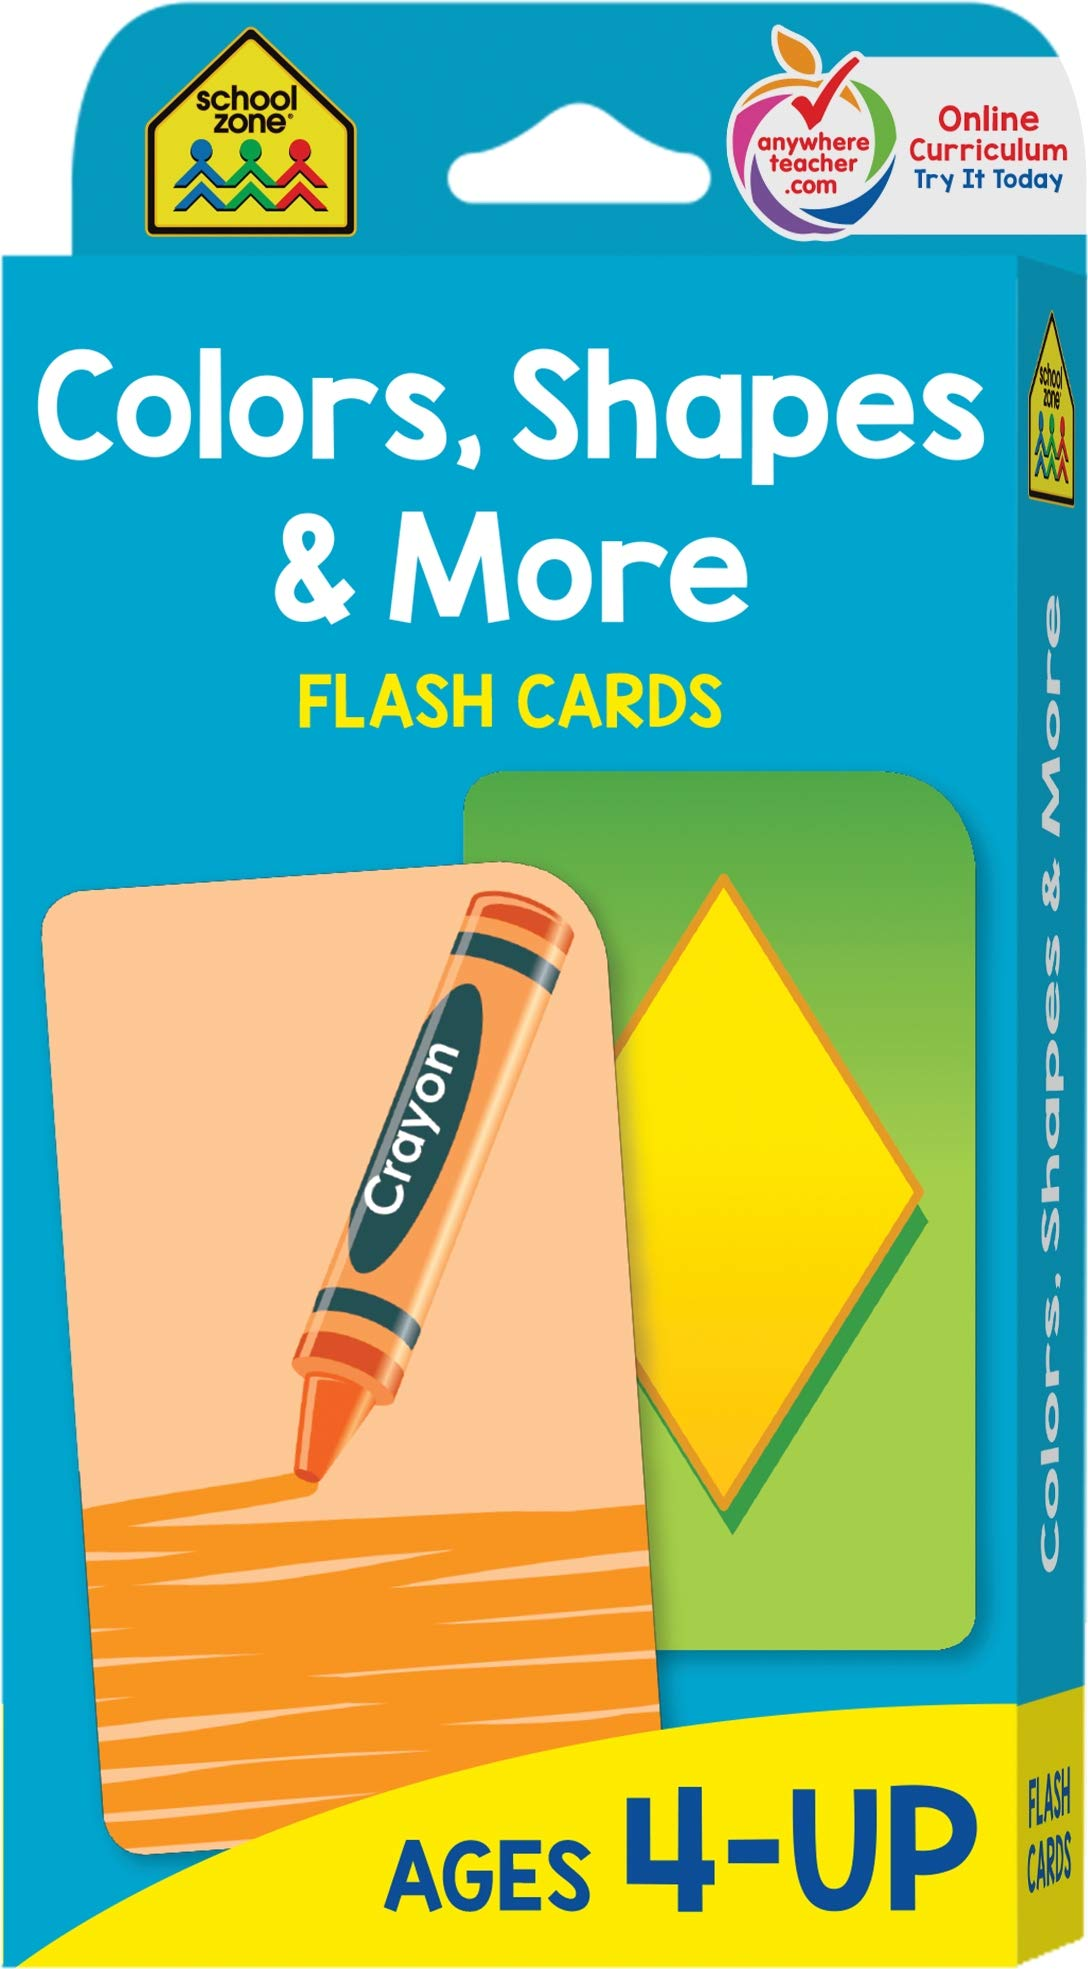 School Zone – Colors, Shapes & More Flash Cards – Ages 4 and Up, Preschool to Kindergarten, Pictures, Numbers, Rhyming Words, Directional Words, Shape Recognition, and More